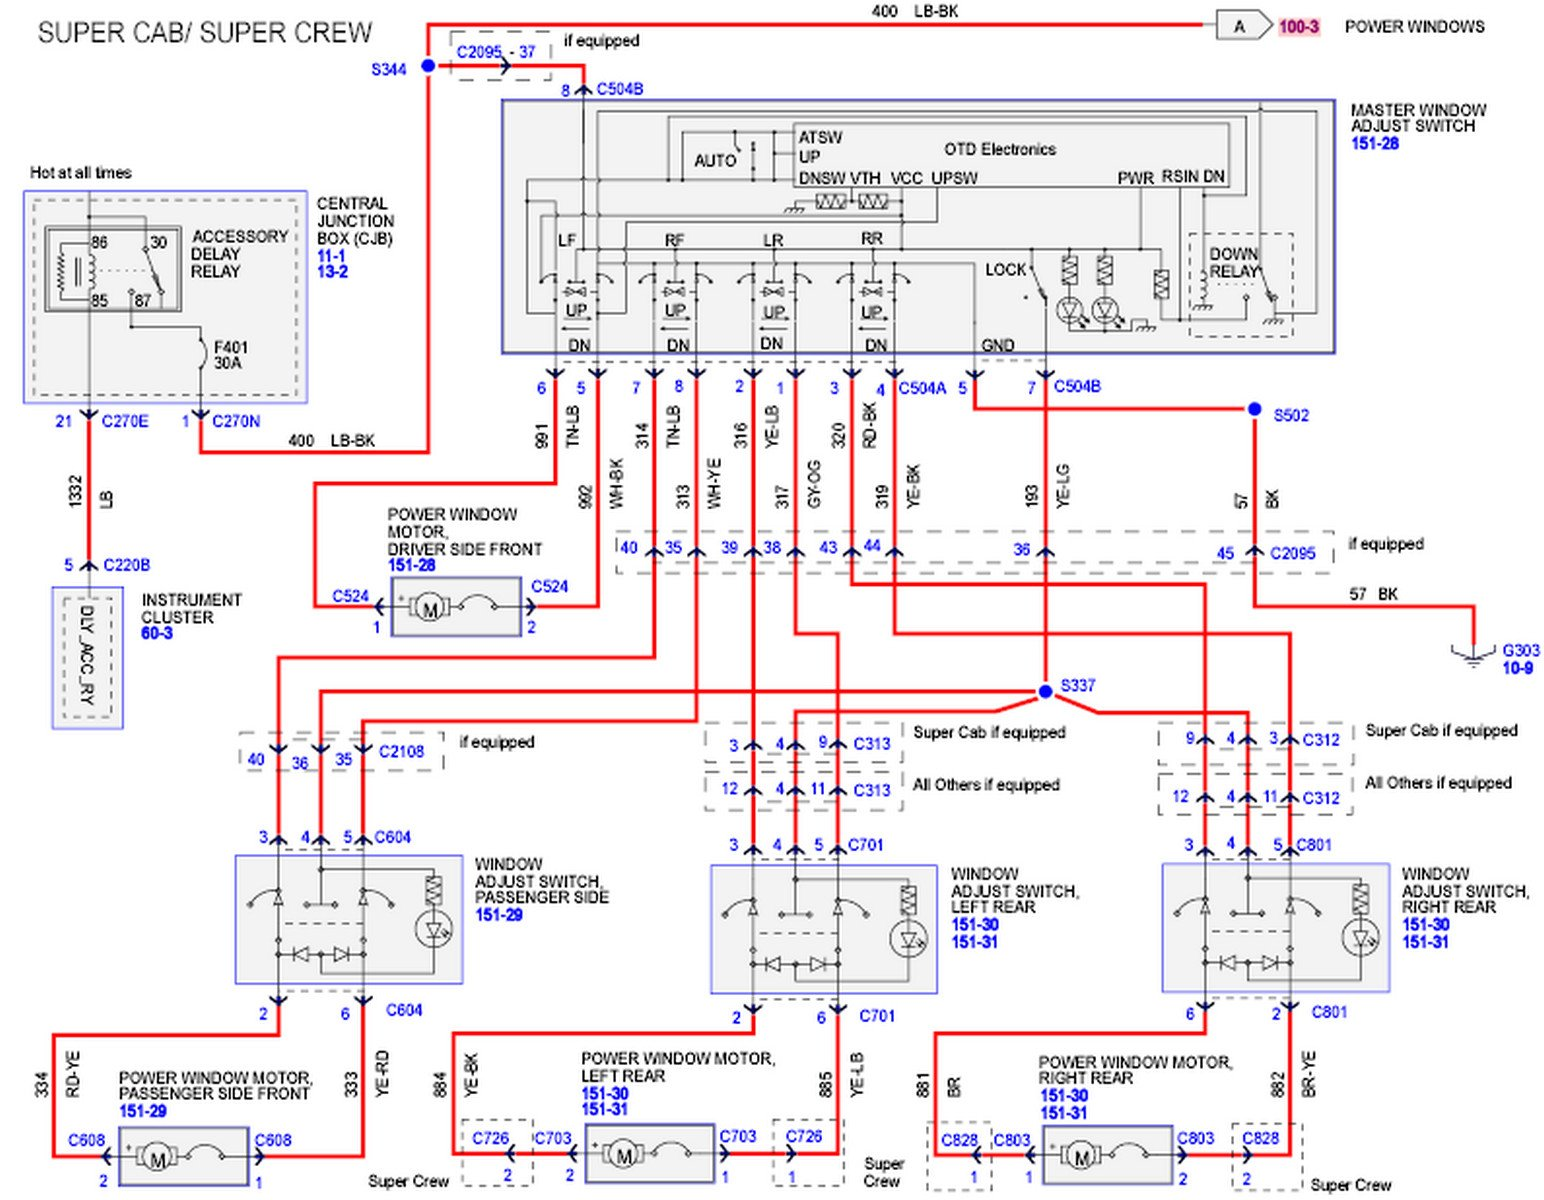 2010 03 29_202805_06_F 150_power_window_wiring_diagram need aftermarket power window wiring diagram hot rod forum 06 f150 wiring diagram at bakdesigns.co